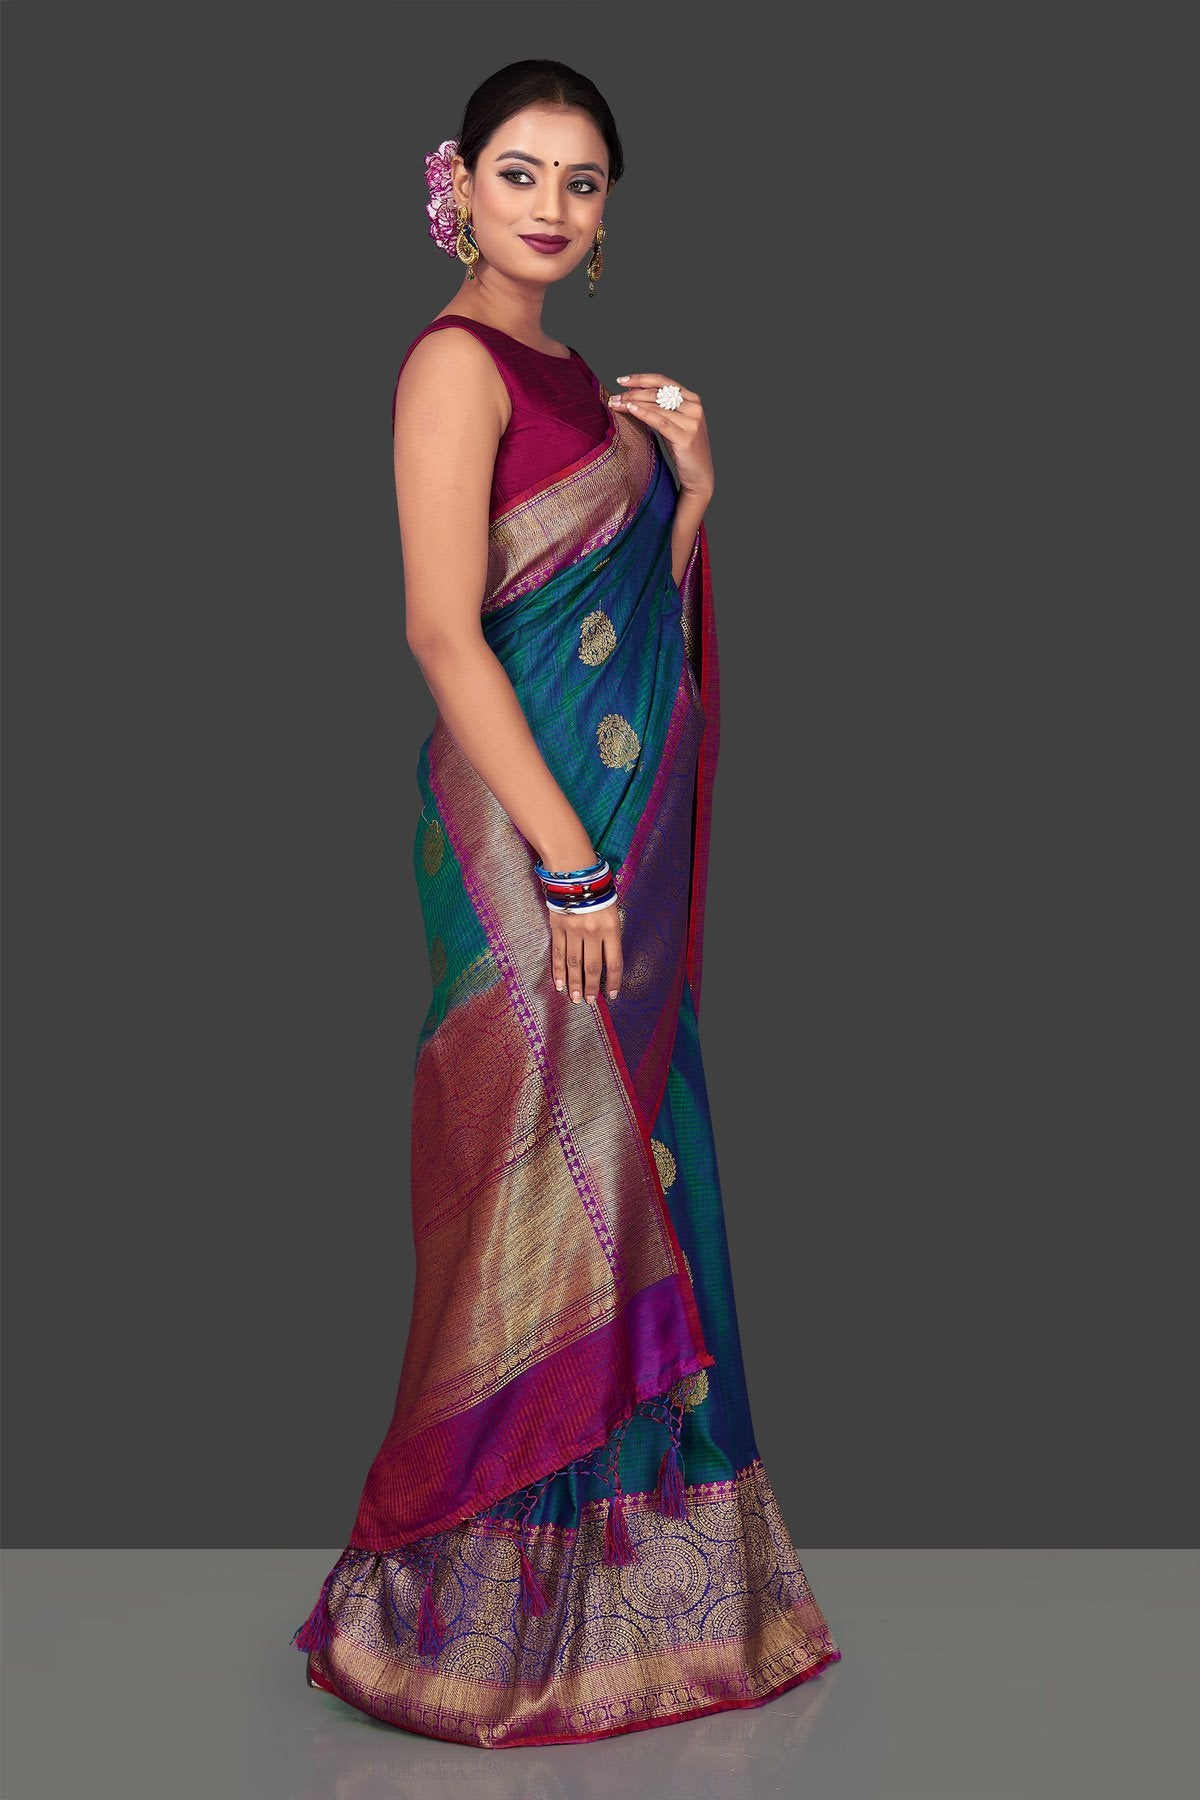 Buy stunning greenish blue tassar Banarasi sari online in USA with antique zari purple and blue border and zari buta. Garner compliments on weddings and special occasions with exquisite Banarasi saris, handwoven silk sarees, tussar sarees from Pure Elegance Indian fashion store in USA.-right